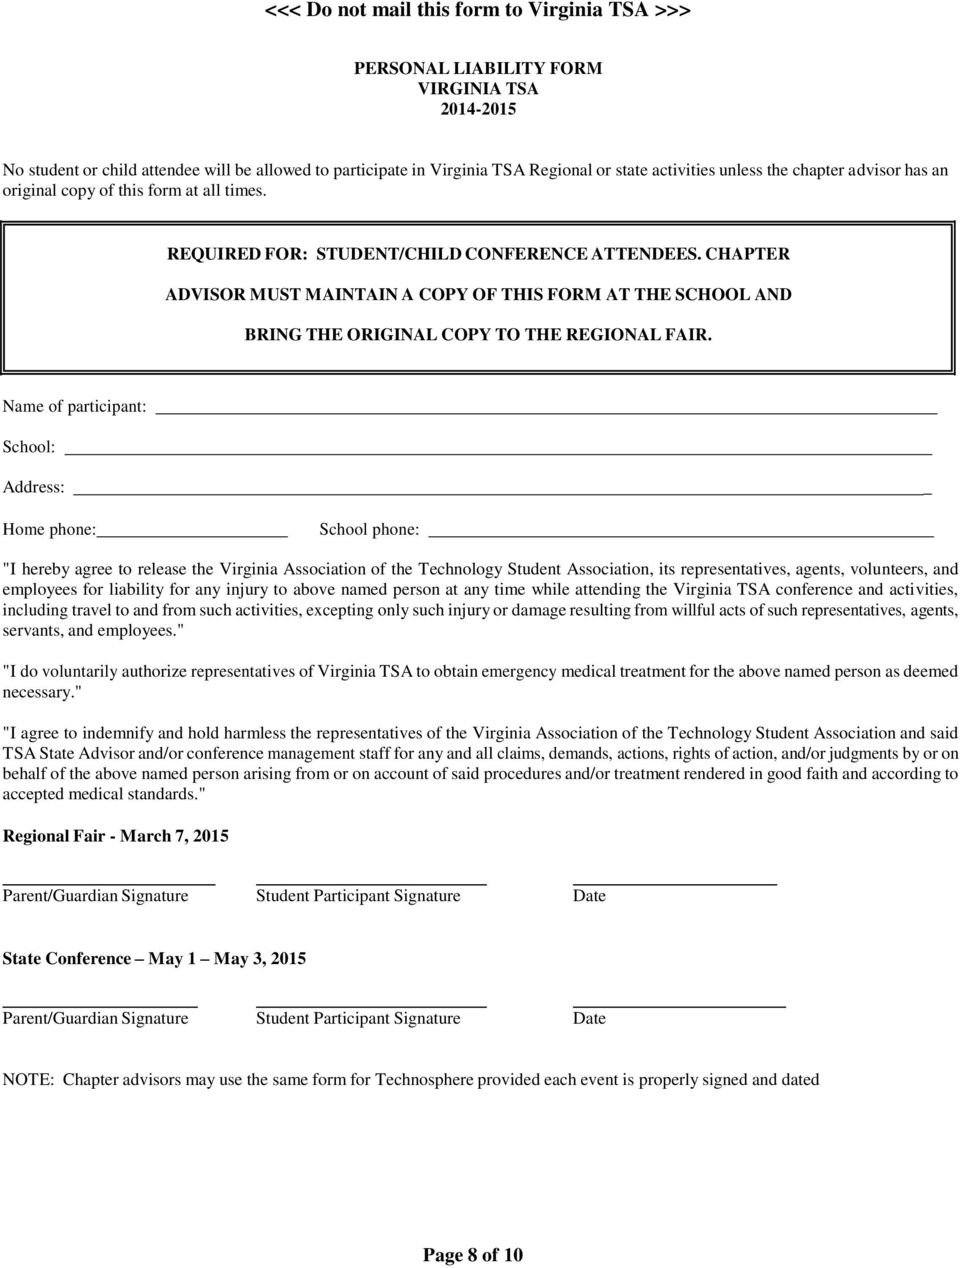 CHAPTER ADVISOR MUST MAINTAIN A COPY OF THIS FORM AT THE SCHOOL AND BRING THE ORIGINAL COPY TO THE REGIONAL FAIR.